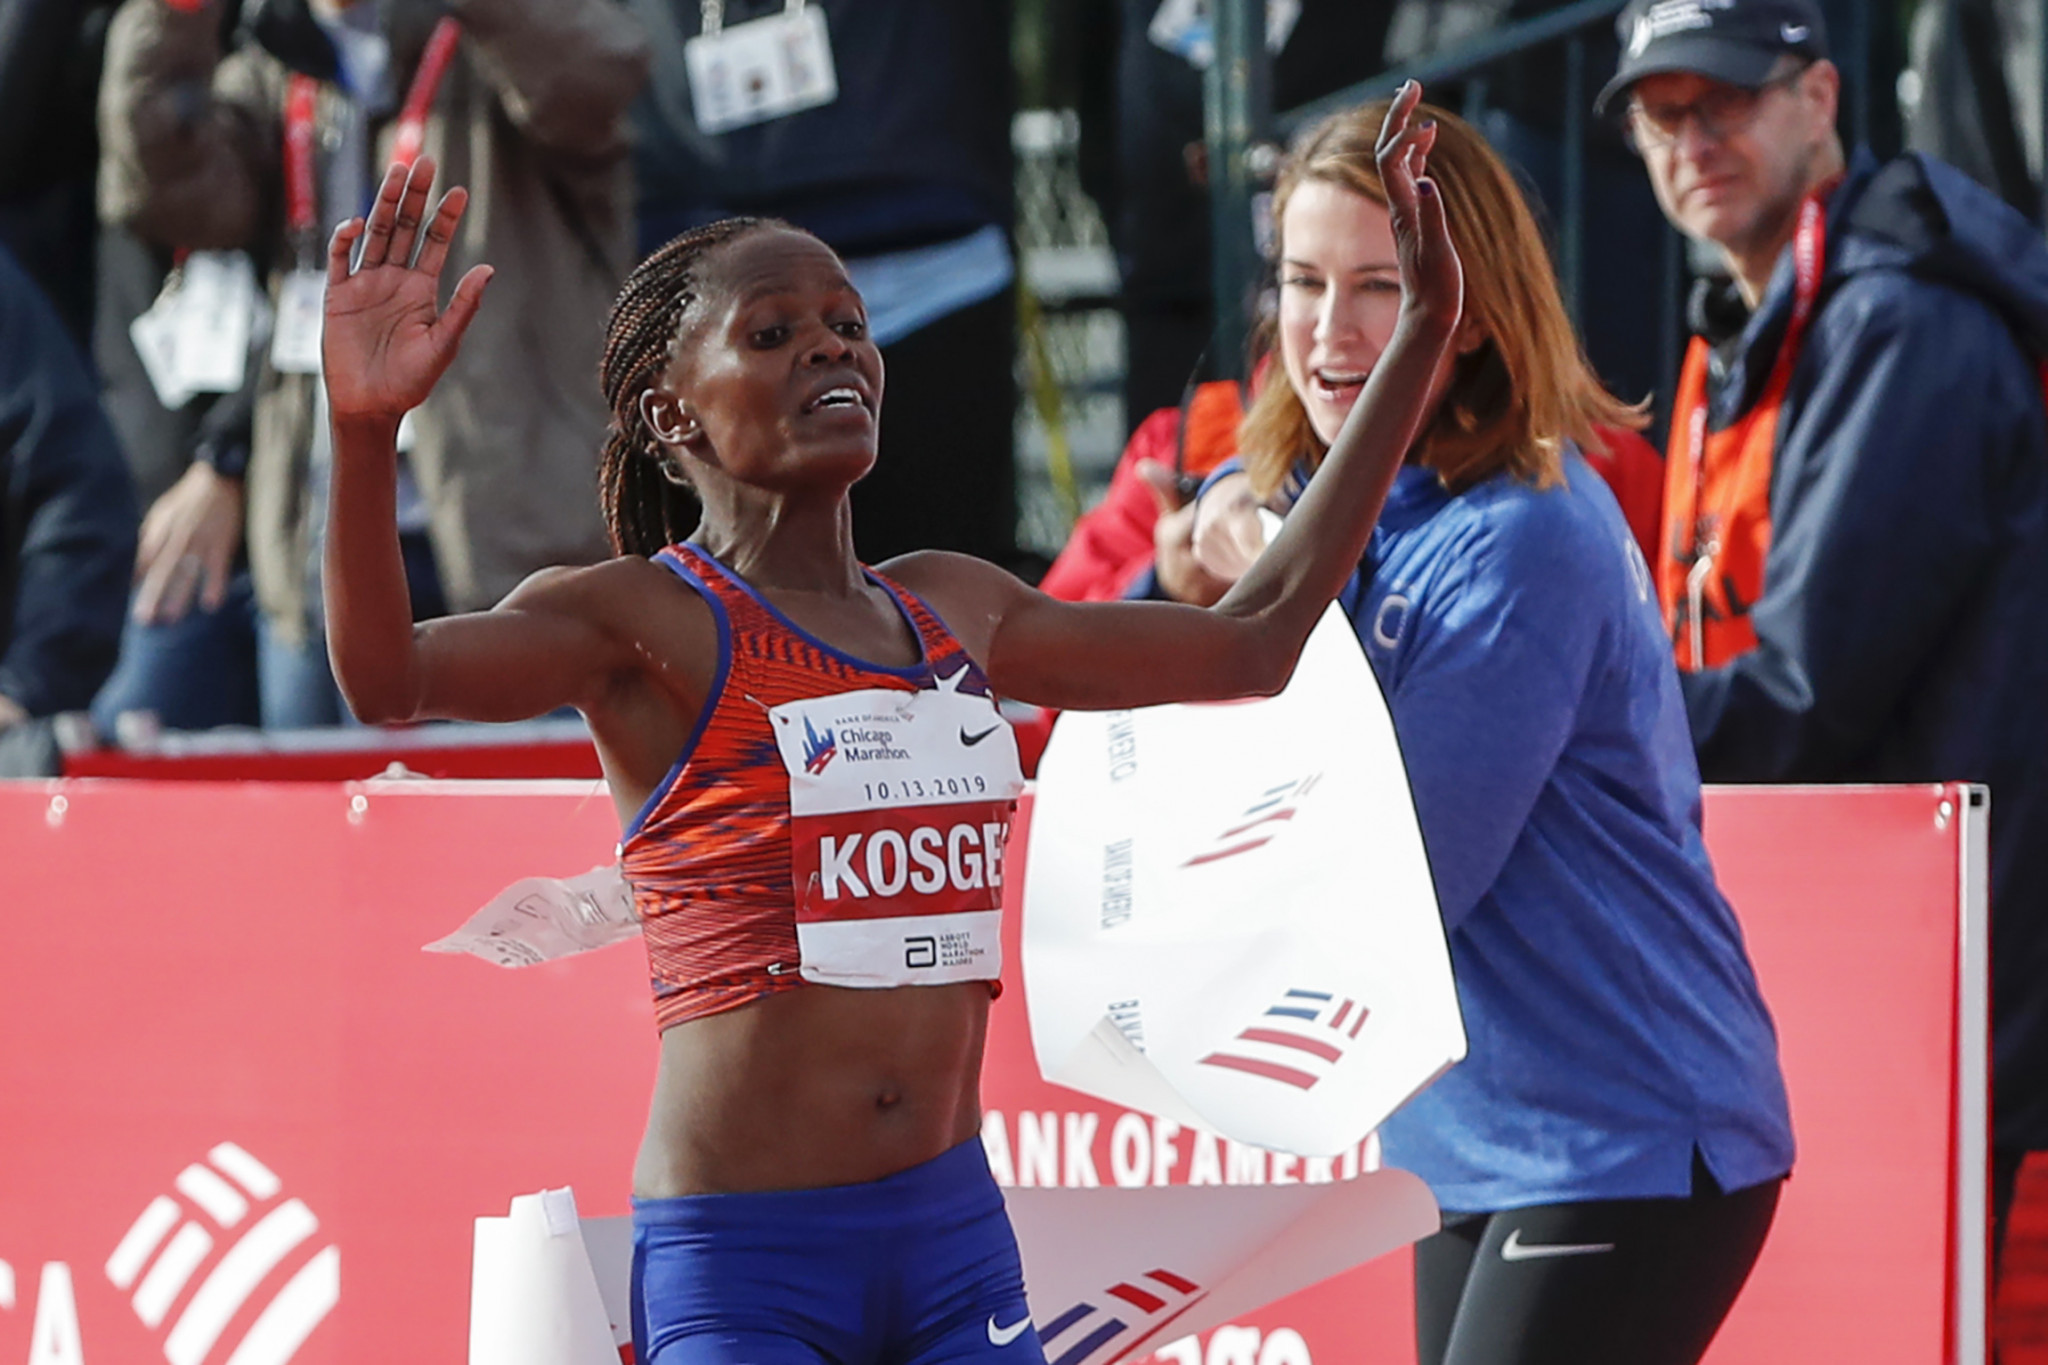 Kenya's Brigid Kosgei, the new marathon world record holder, was among 11 nominations for the IAAF Women's World Athlete of the Year on a list that also includes two team-mates ©Getty Images